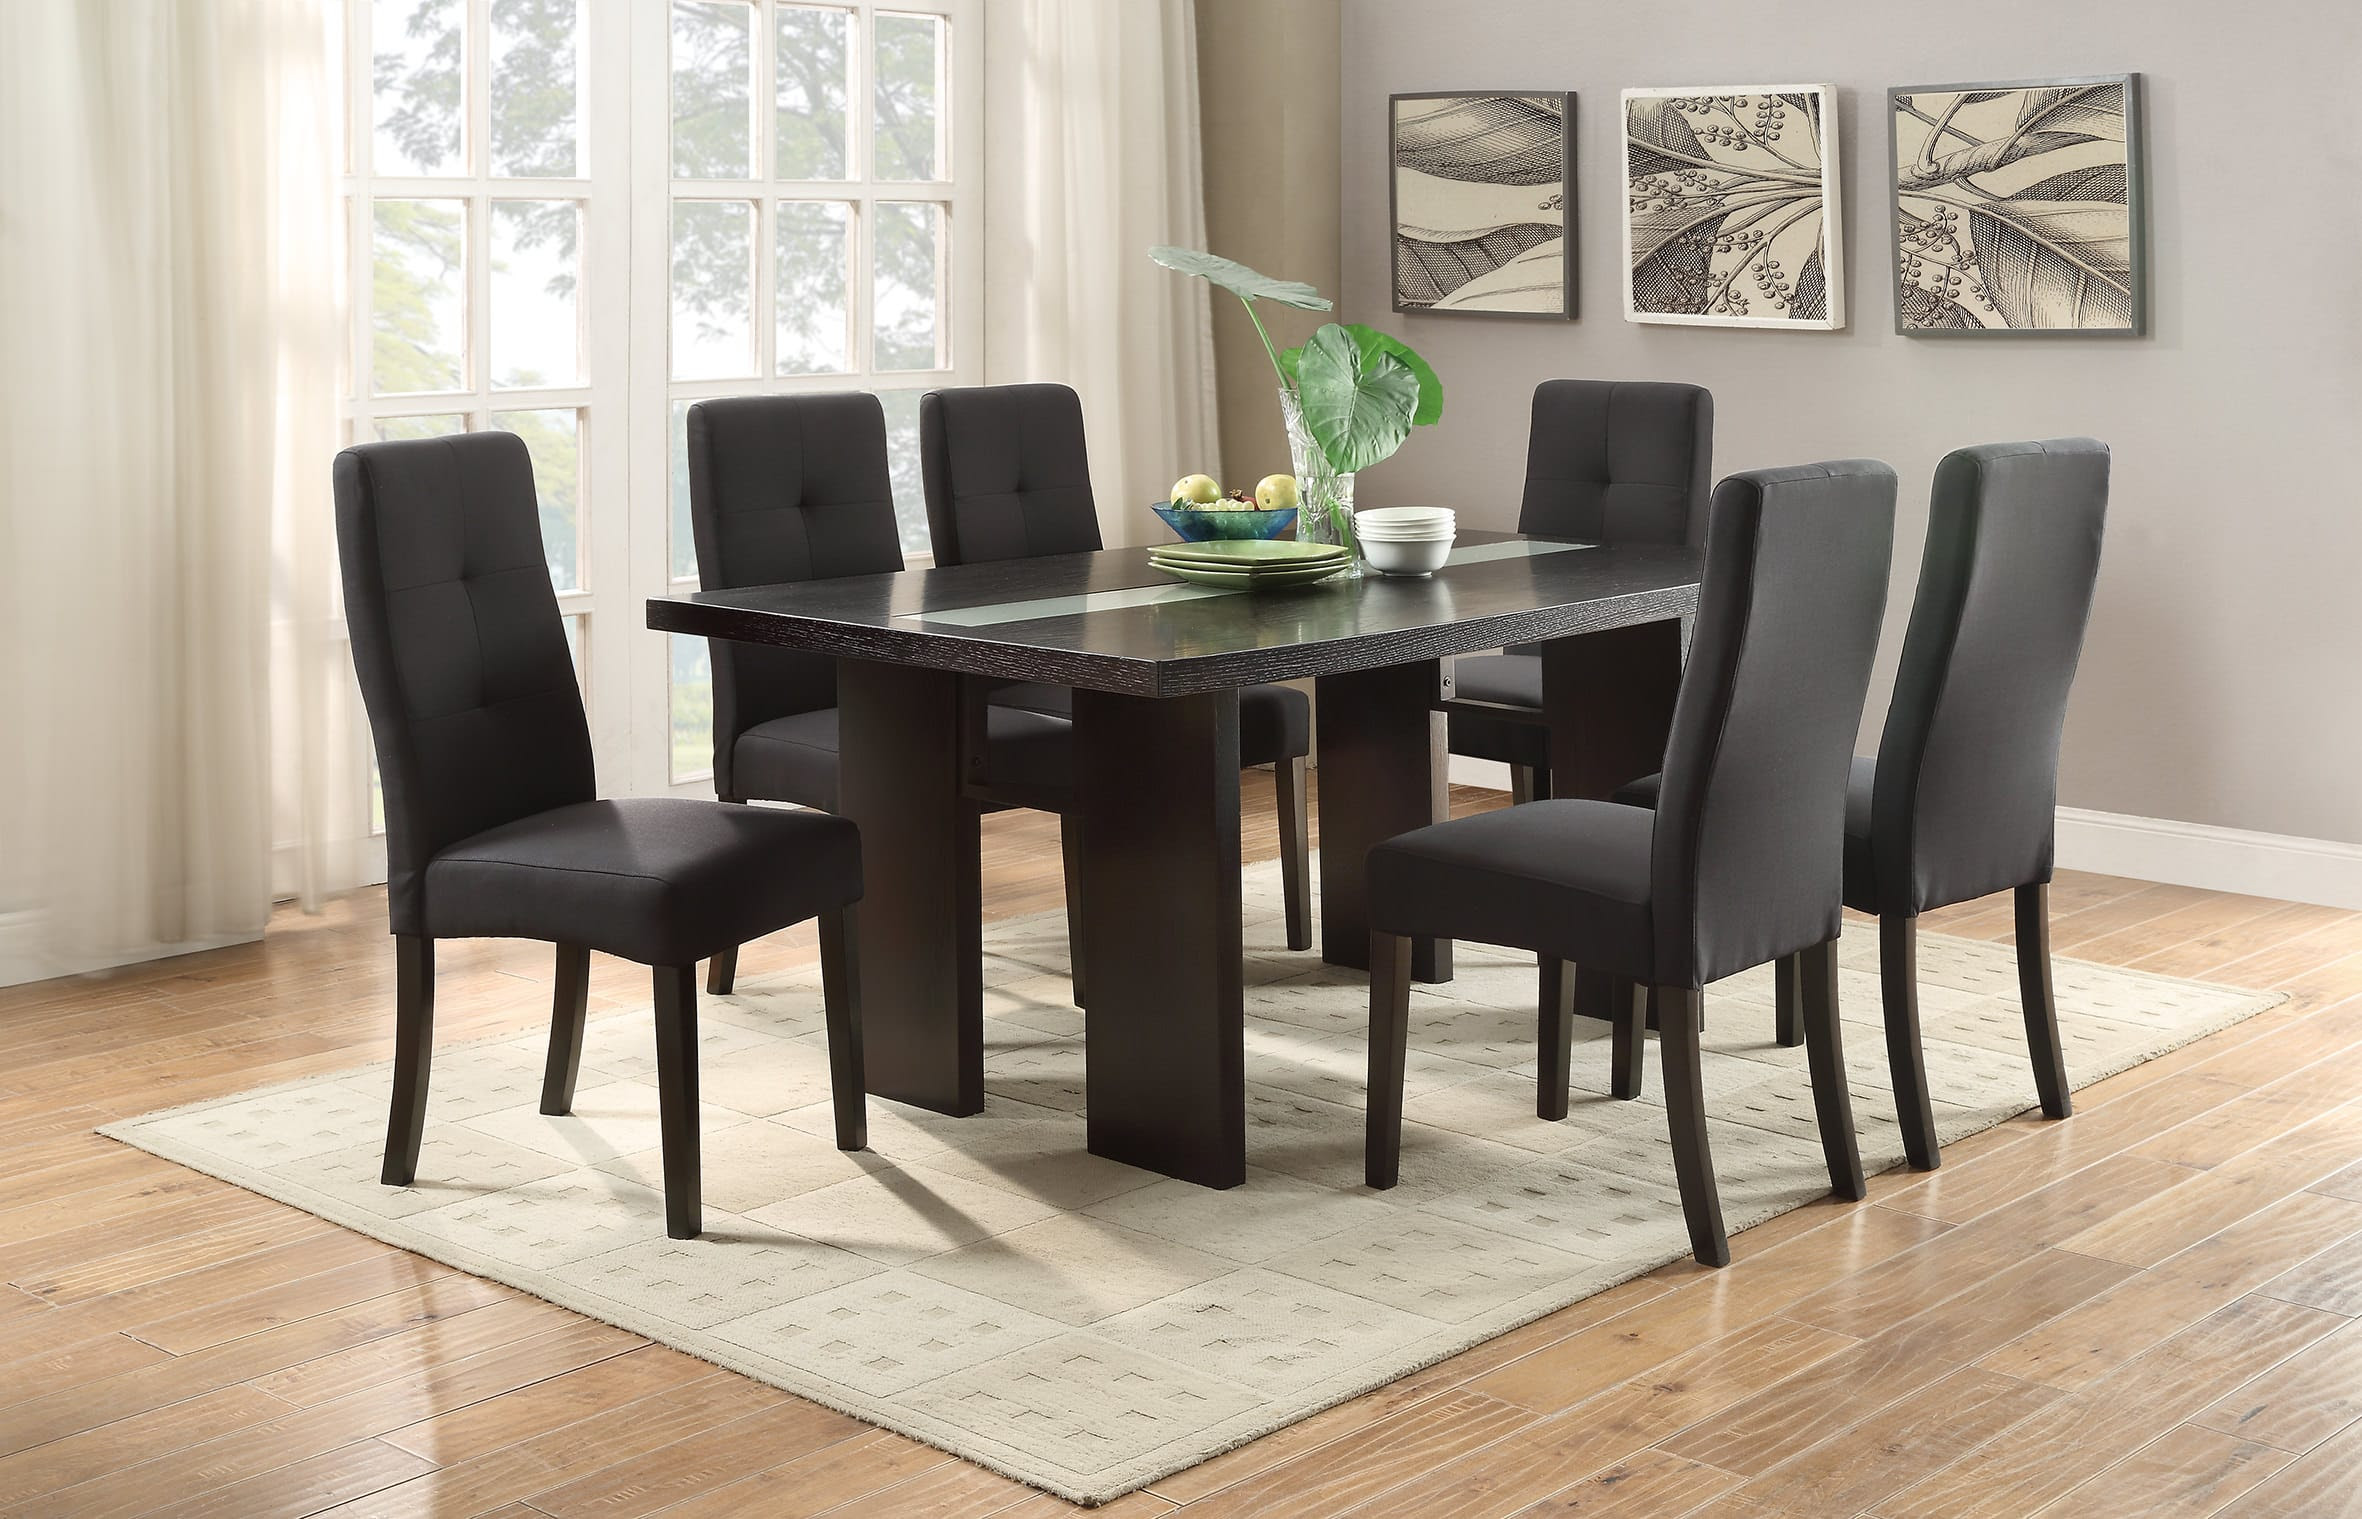 F2367 Espresso Dining Table by Poundex